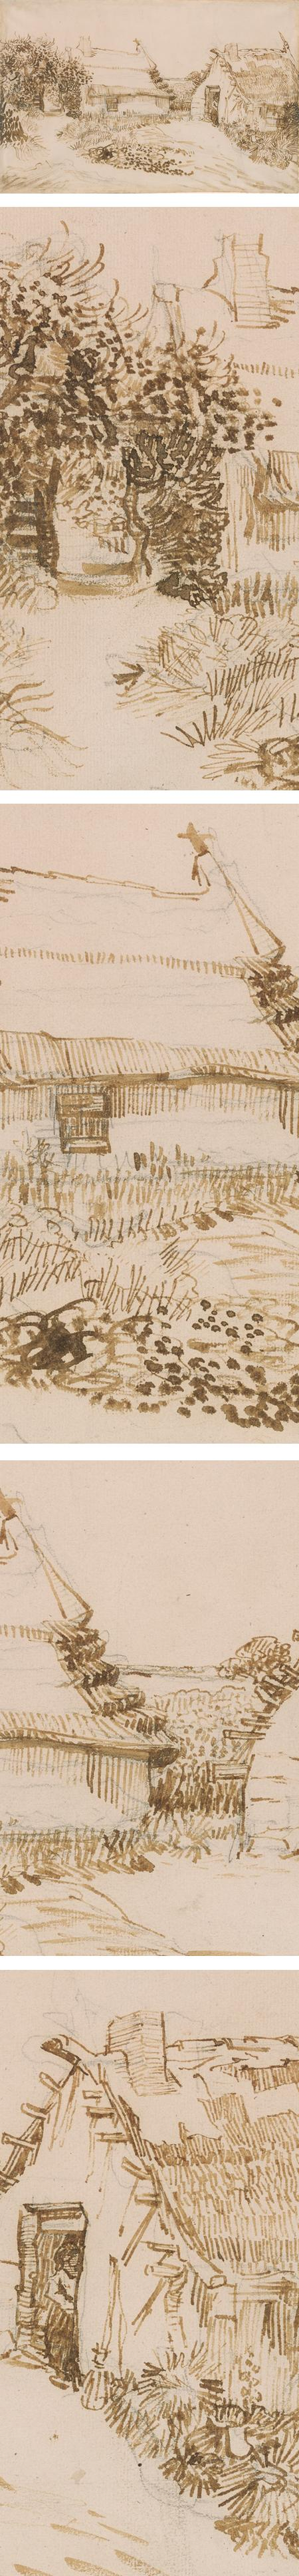 Two Cottages at Saintes-Maries-de-la-Mer, Vincent van Gogh, ink drawing